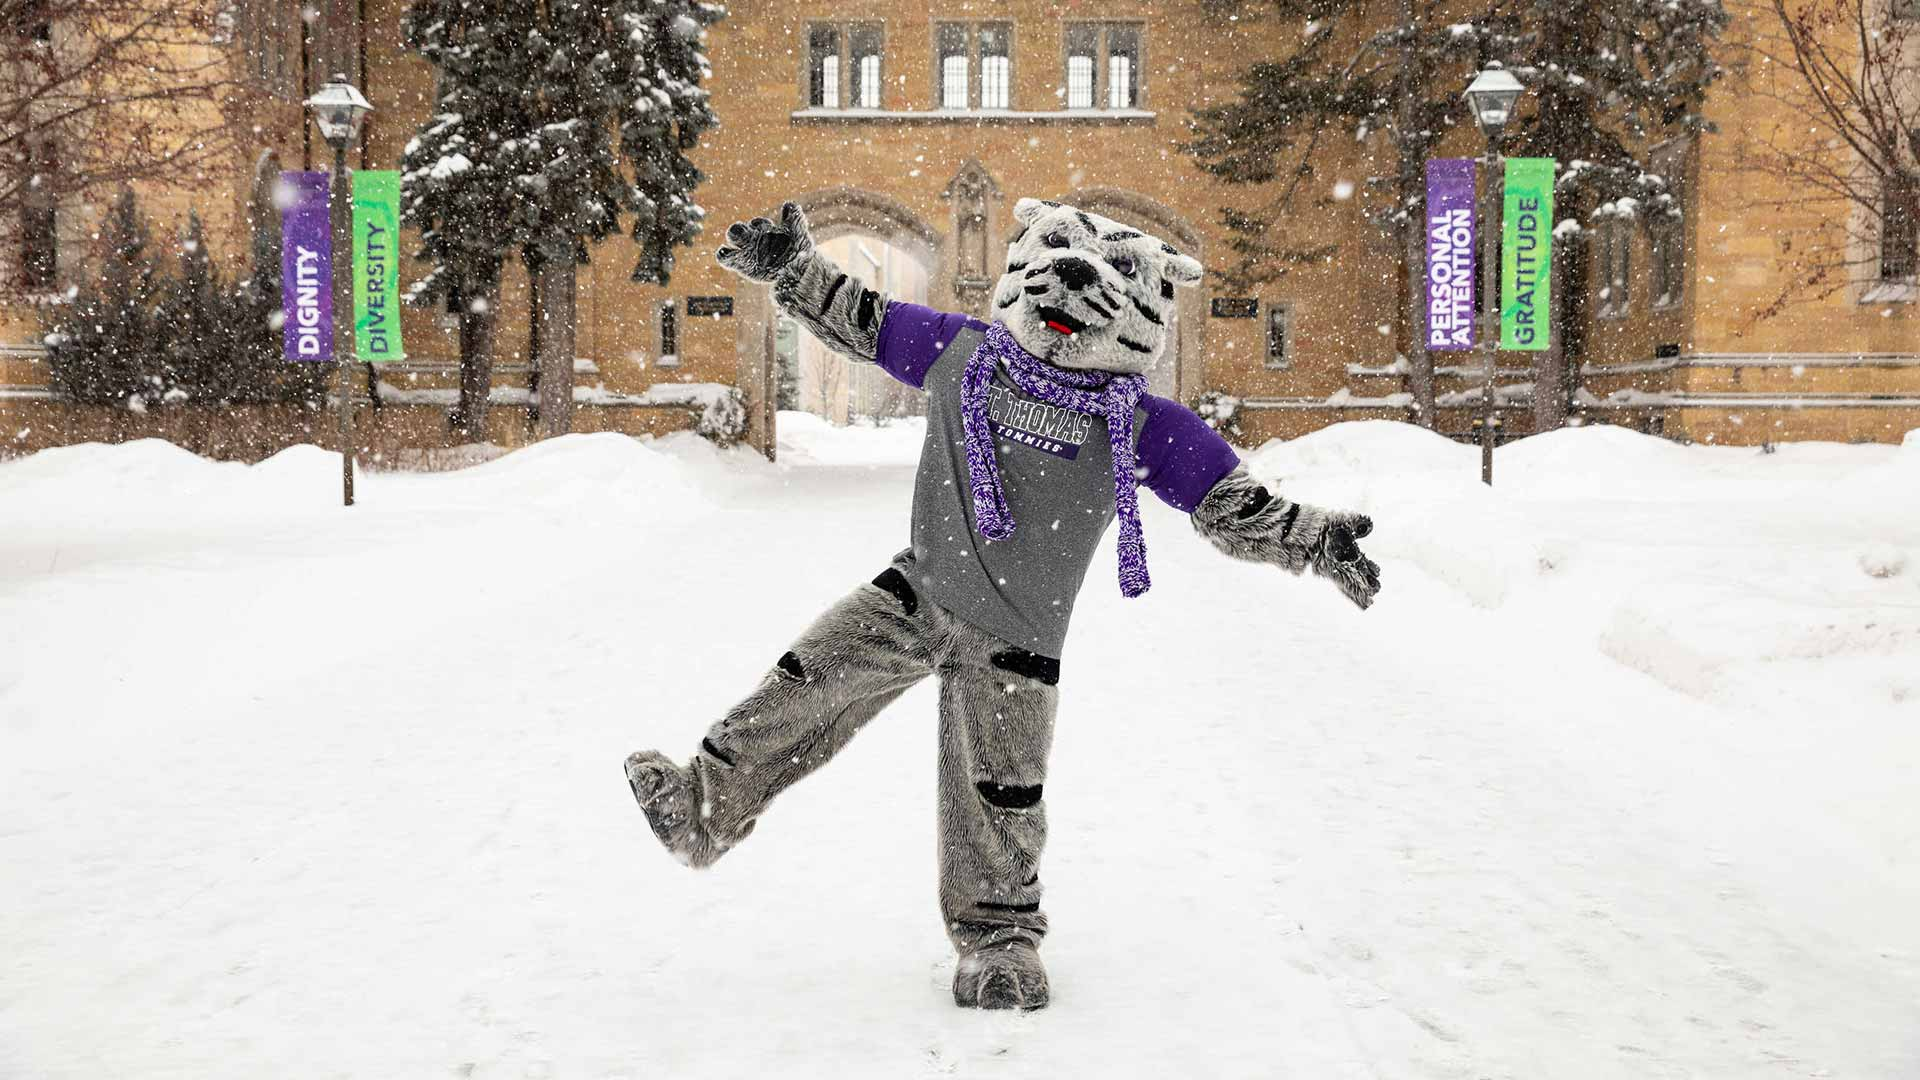 Tommie the mascot walks through the snow in front of The Arches.